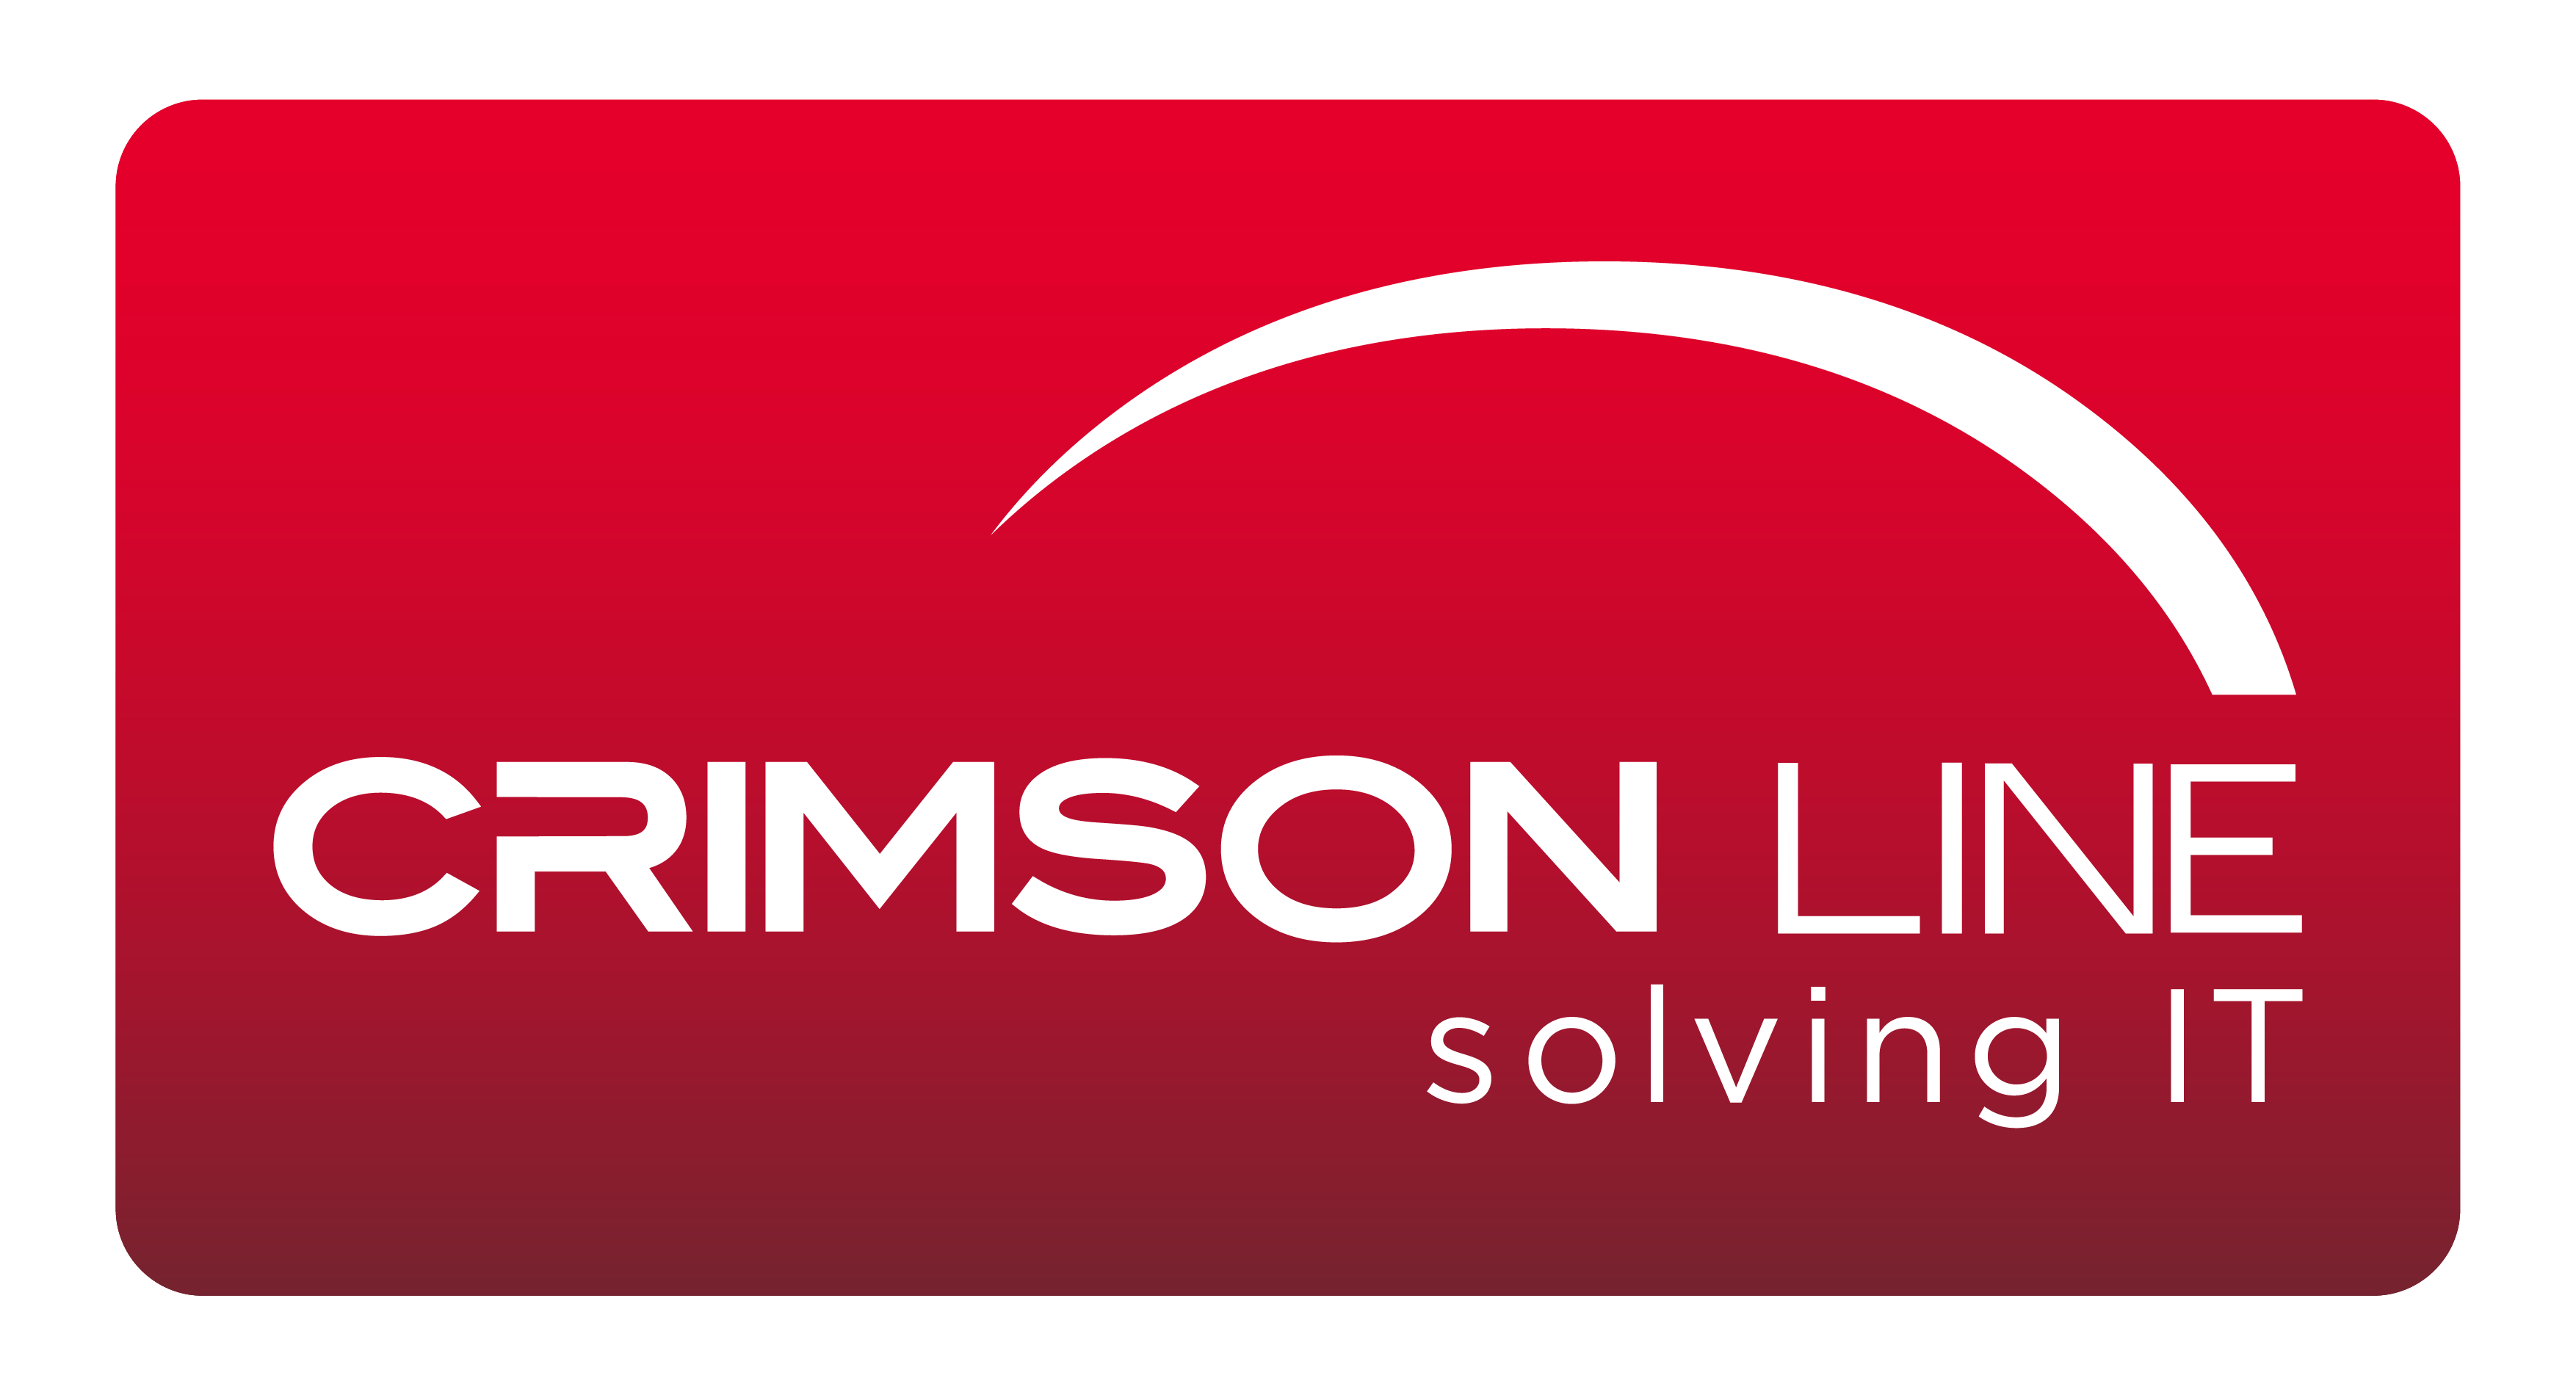 Crimson Line - solving IT